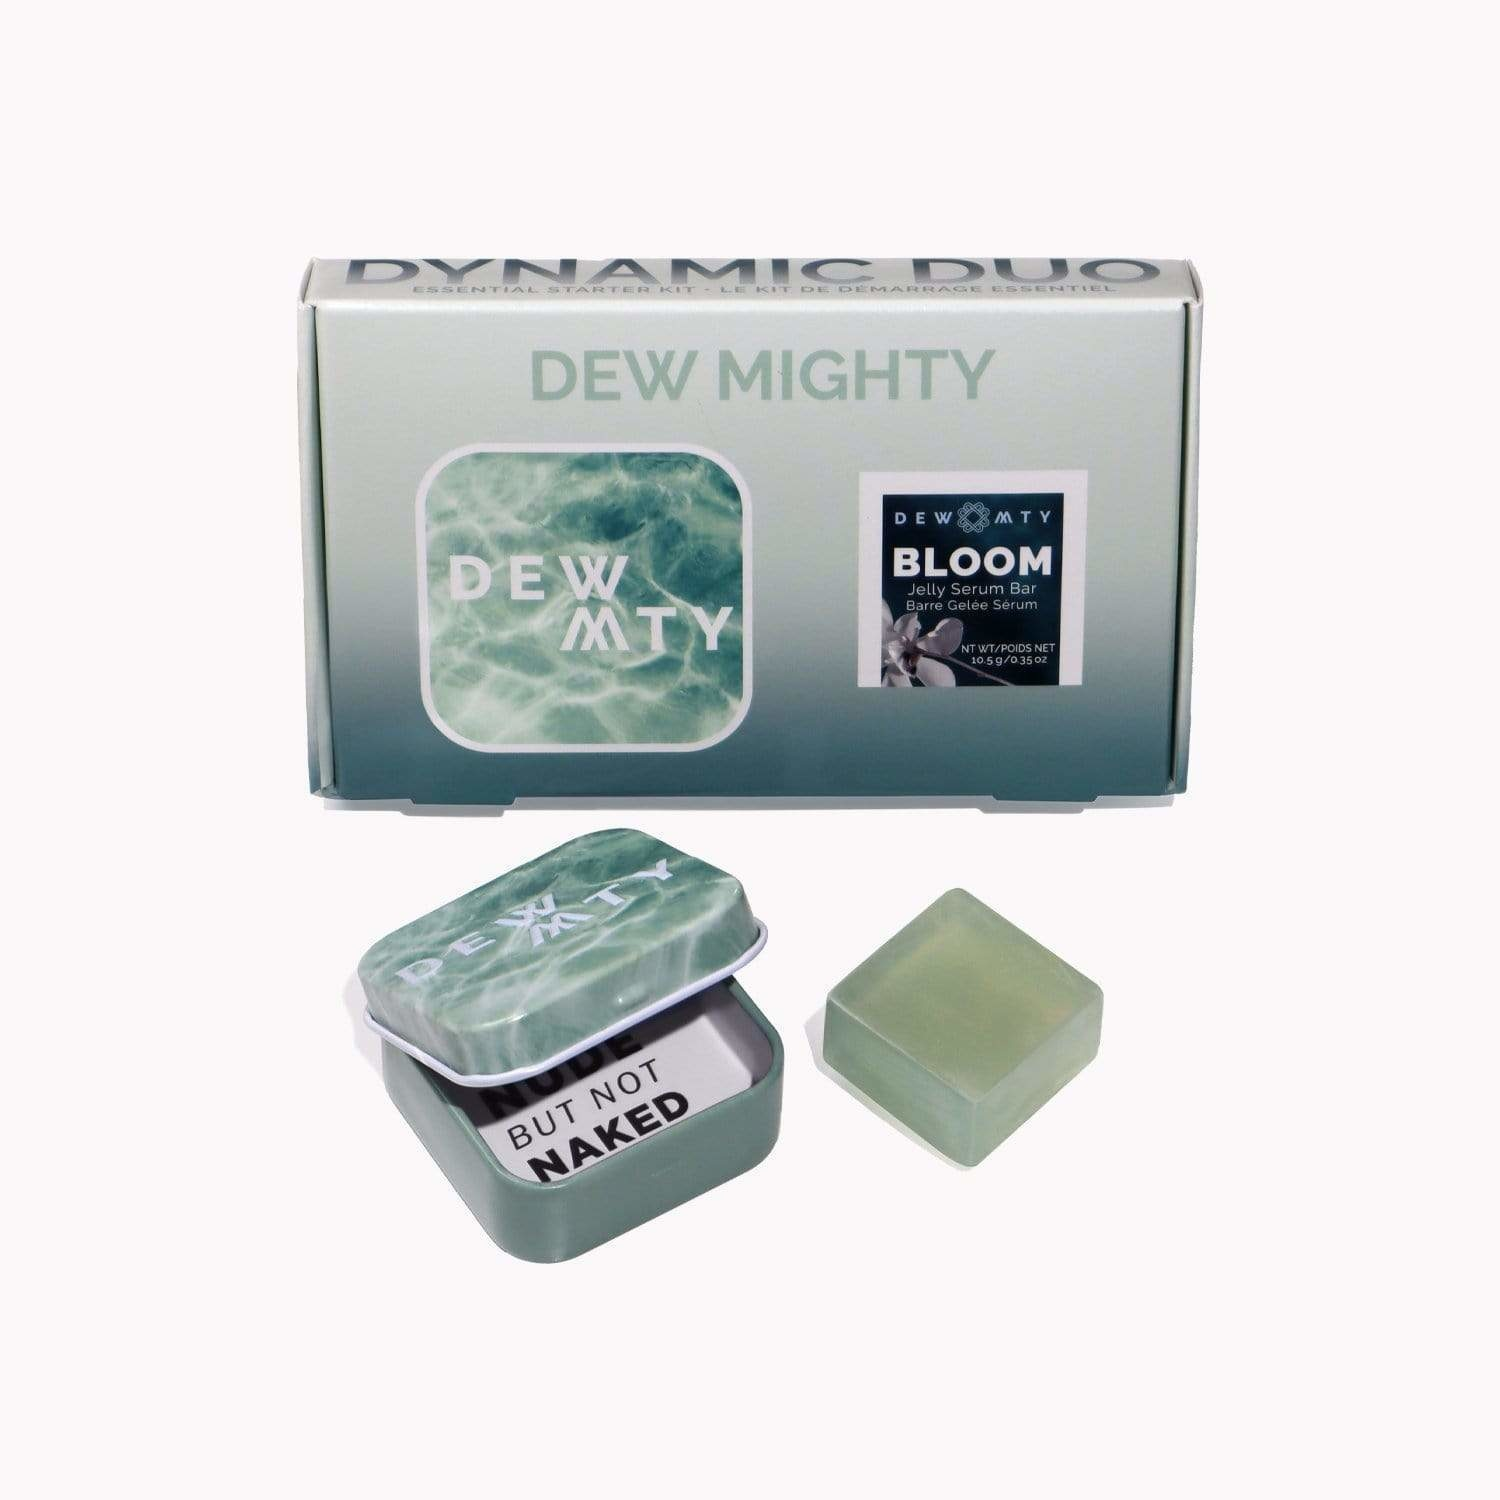 Dew Mighty Dew Mighty Bloom Jelly Serum Bar (Water)